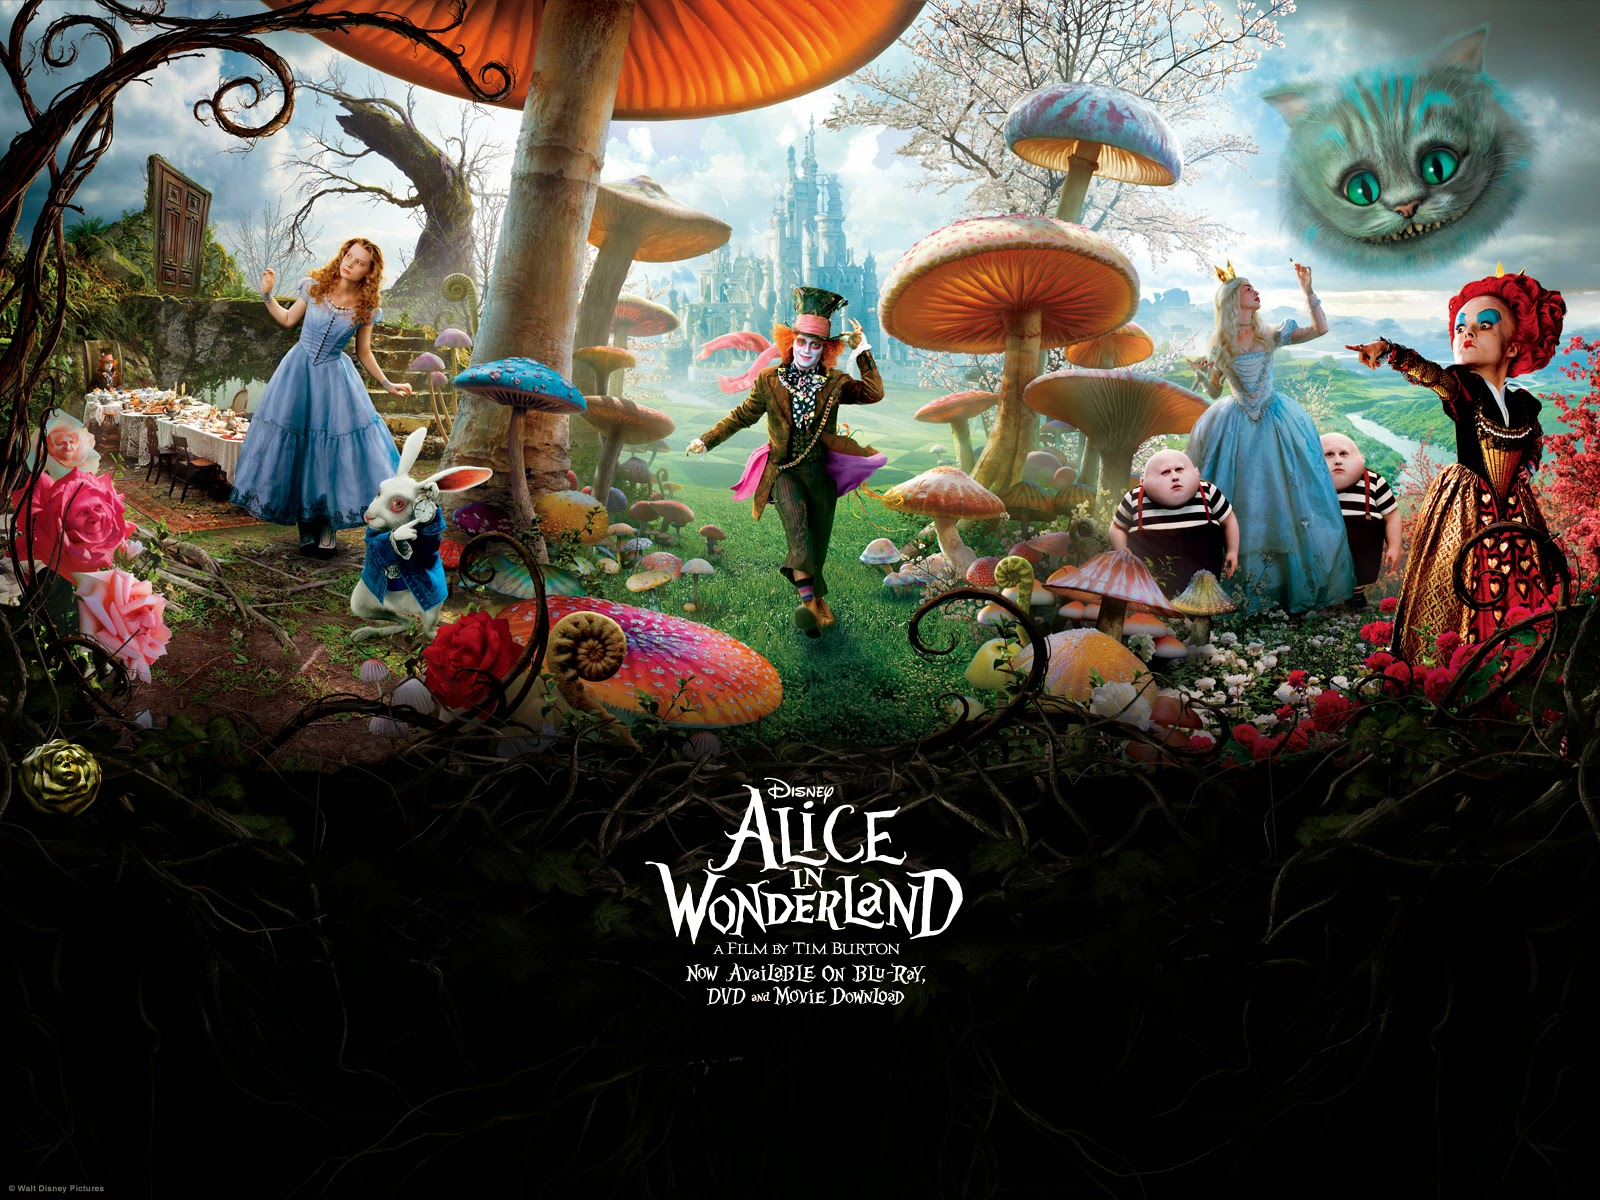 Free Desktop Wallpaper: Alice In Wonderland Wallpaper (Page 3)